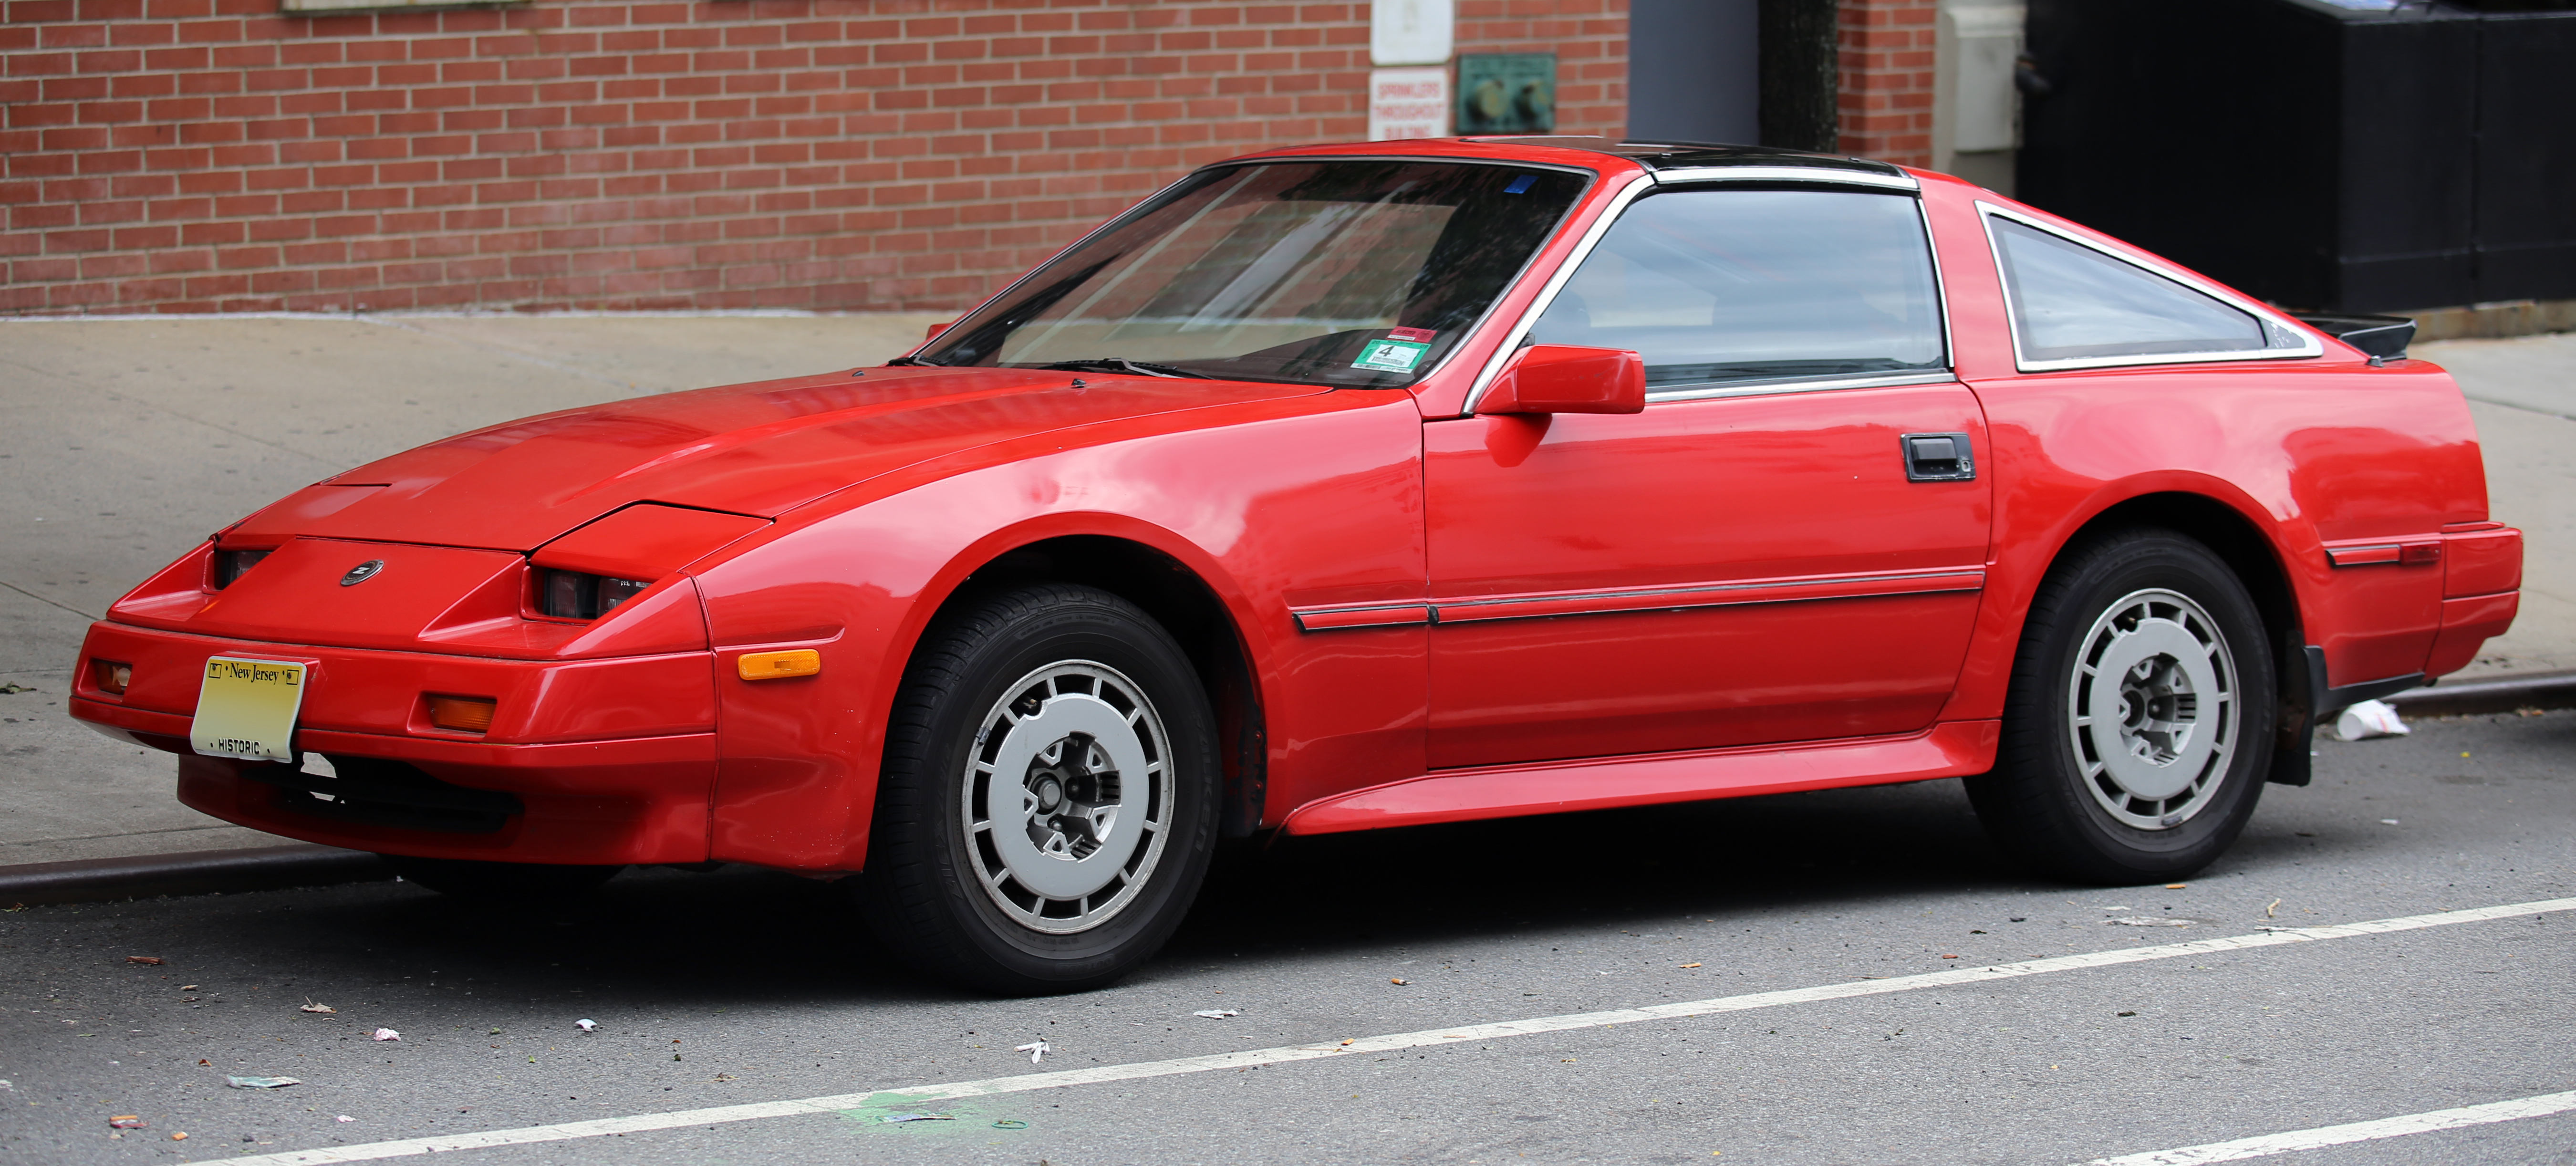 T Top Cars >> 1984 Nissan 300ZX - Supercars.net